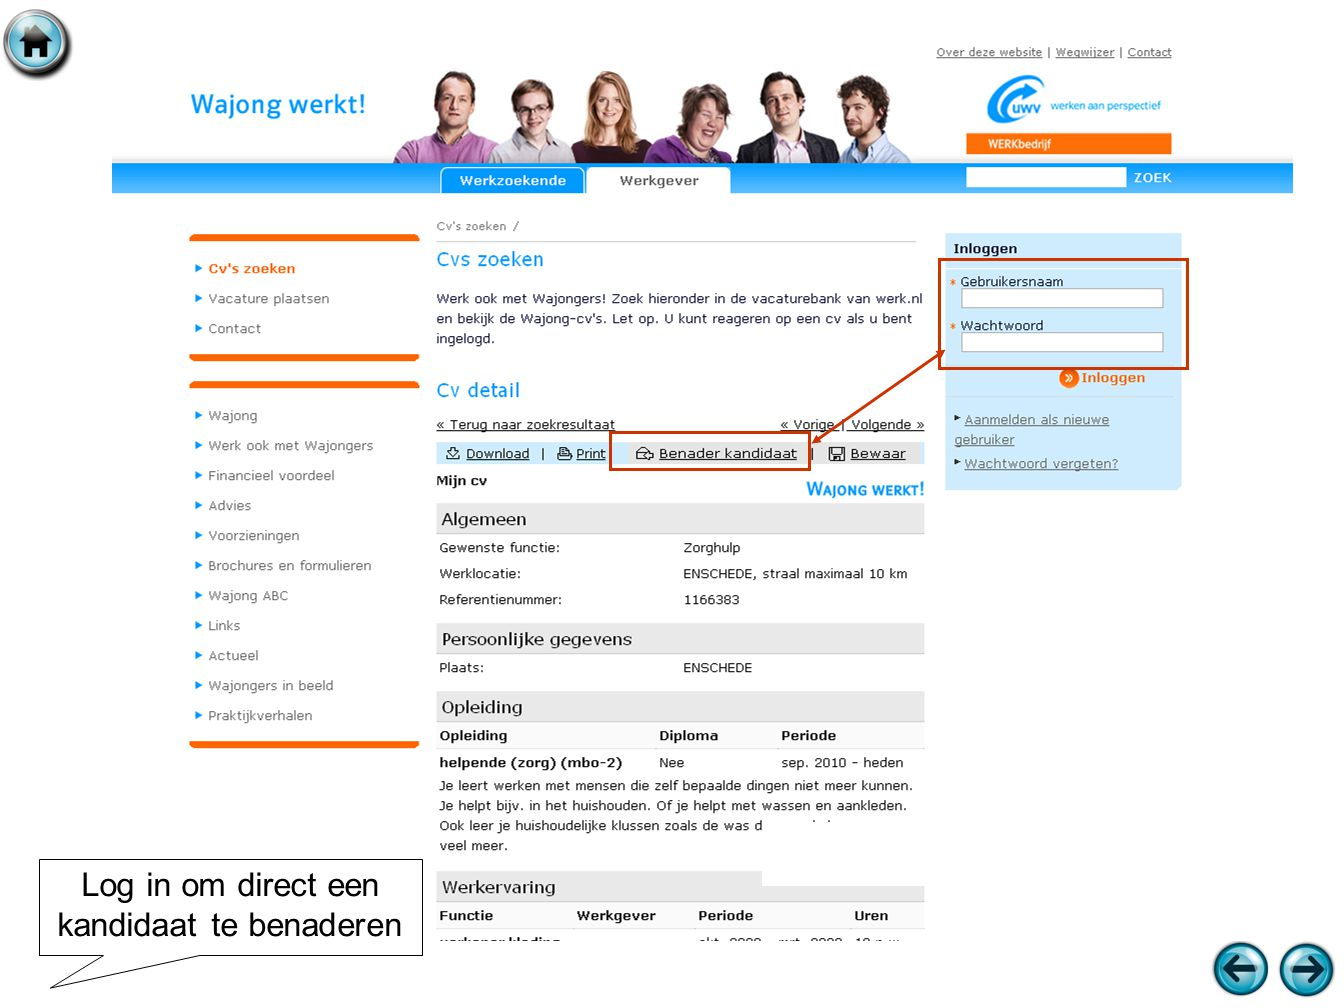 Log in om direct een kandidaat te benaderen